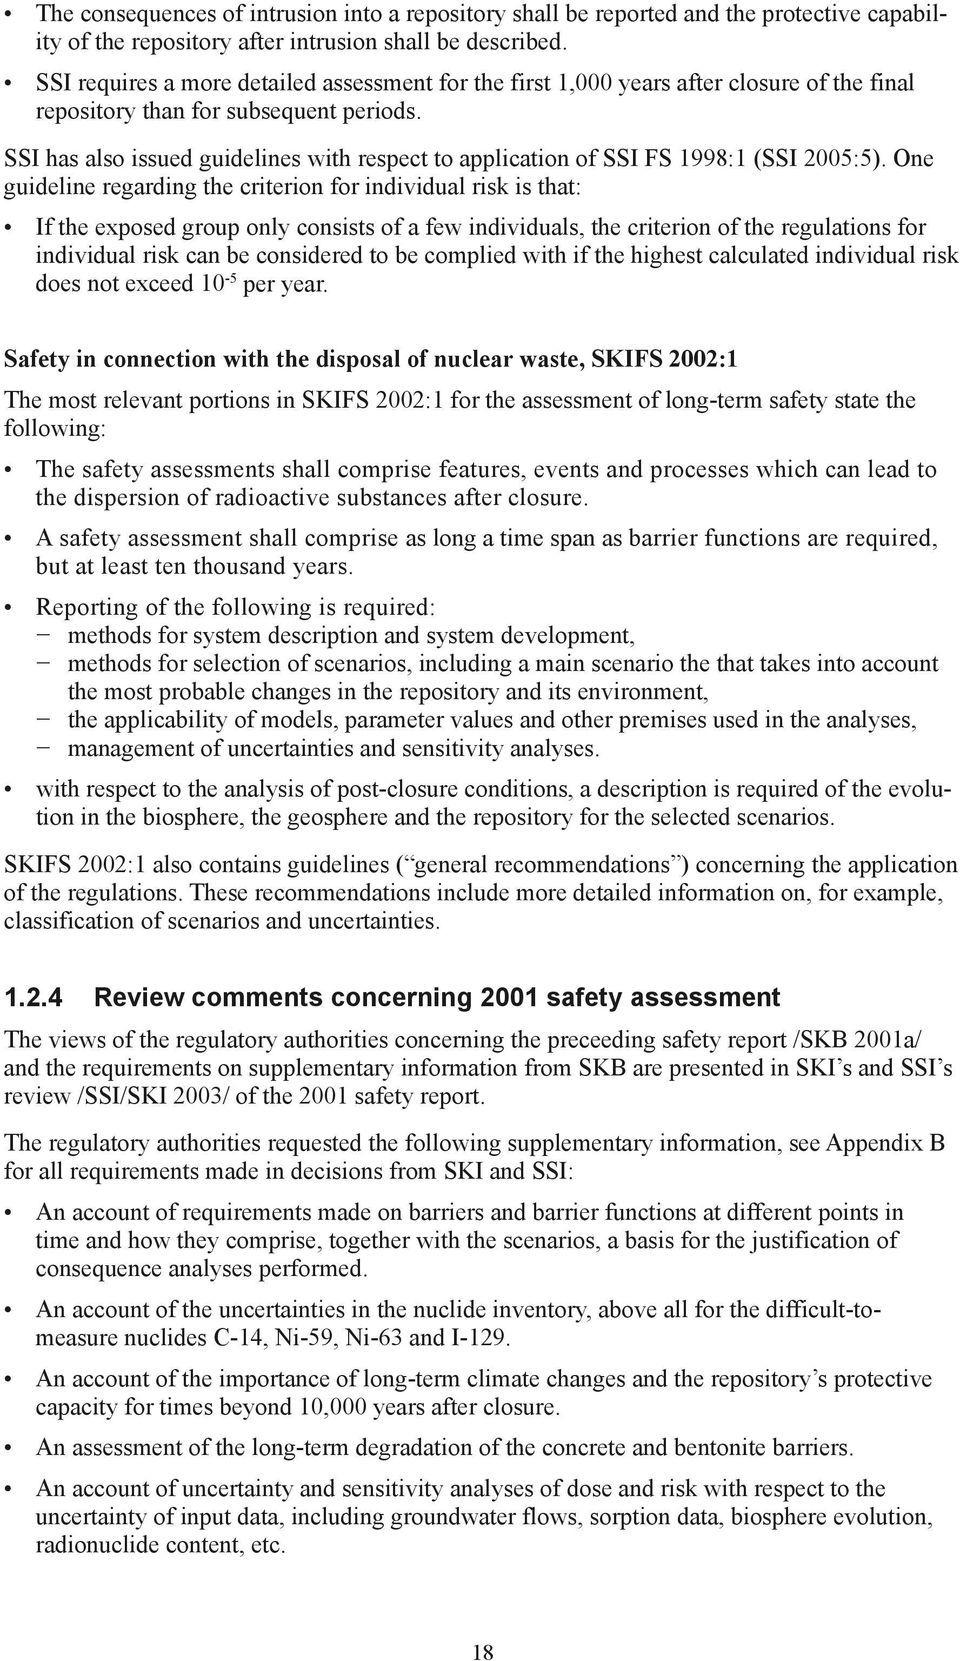 SSI has also issued guidelines with respect to application of SSI FS 1998:1 (SSI 2005:5).